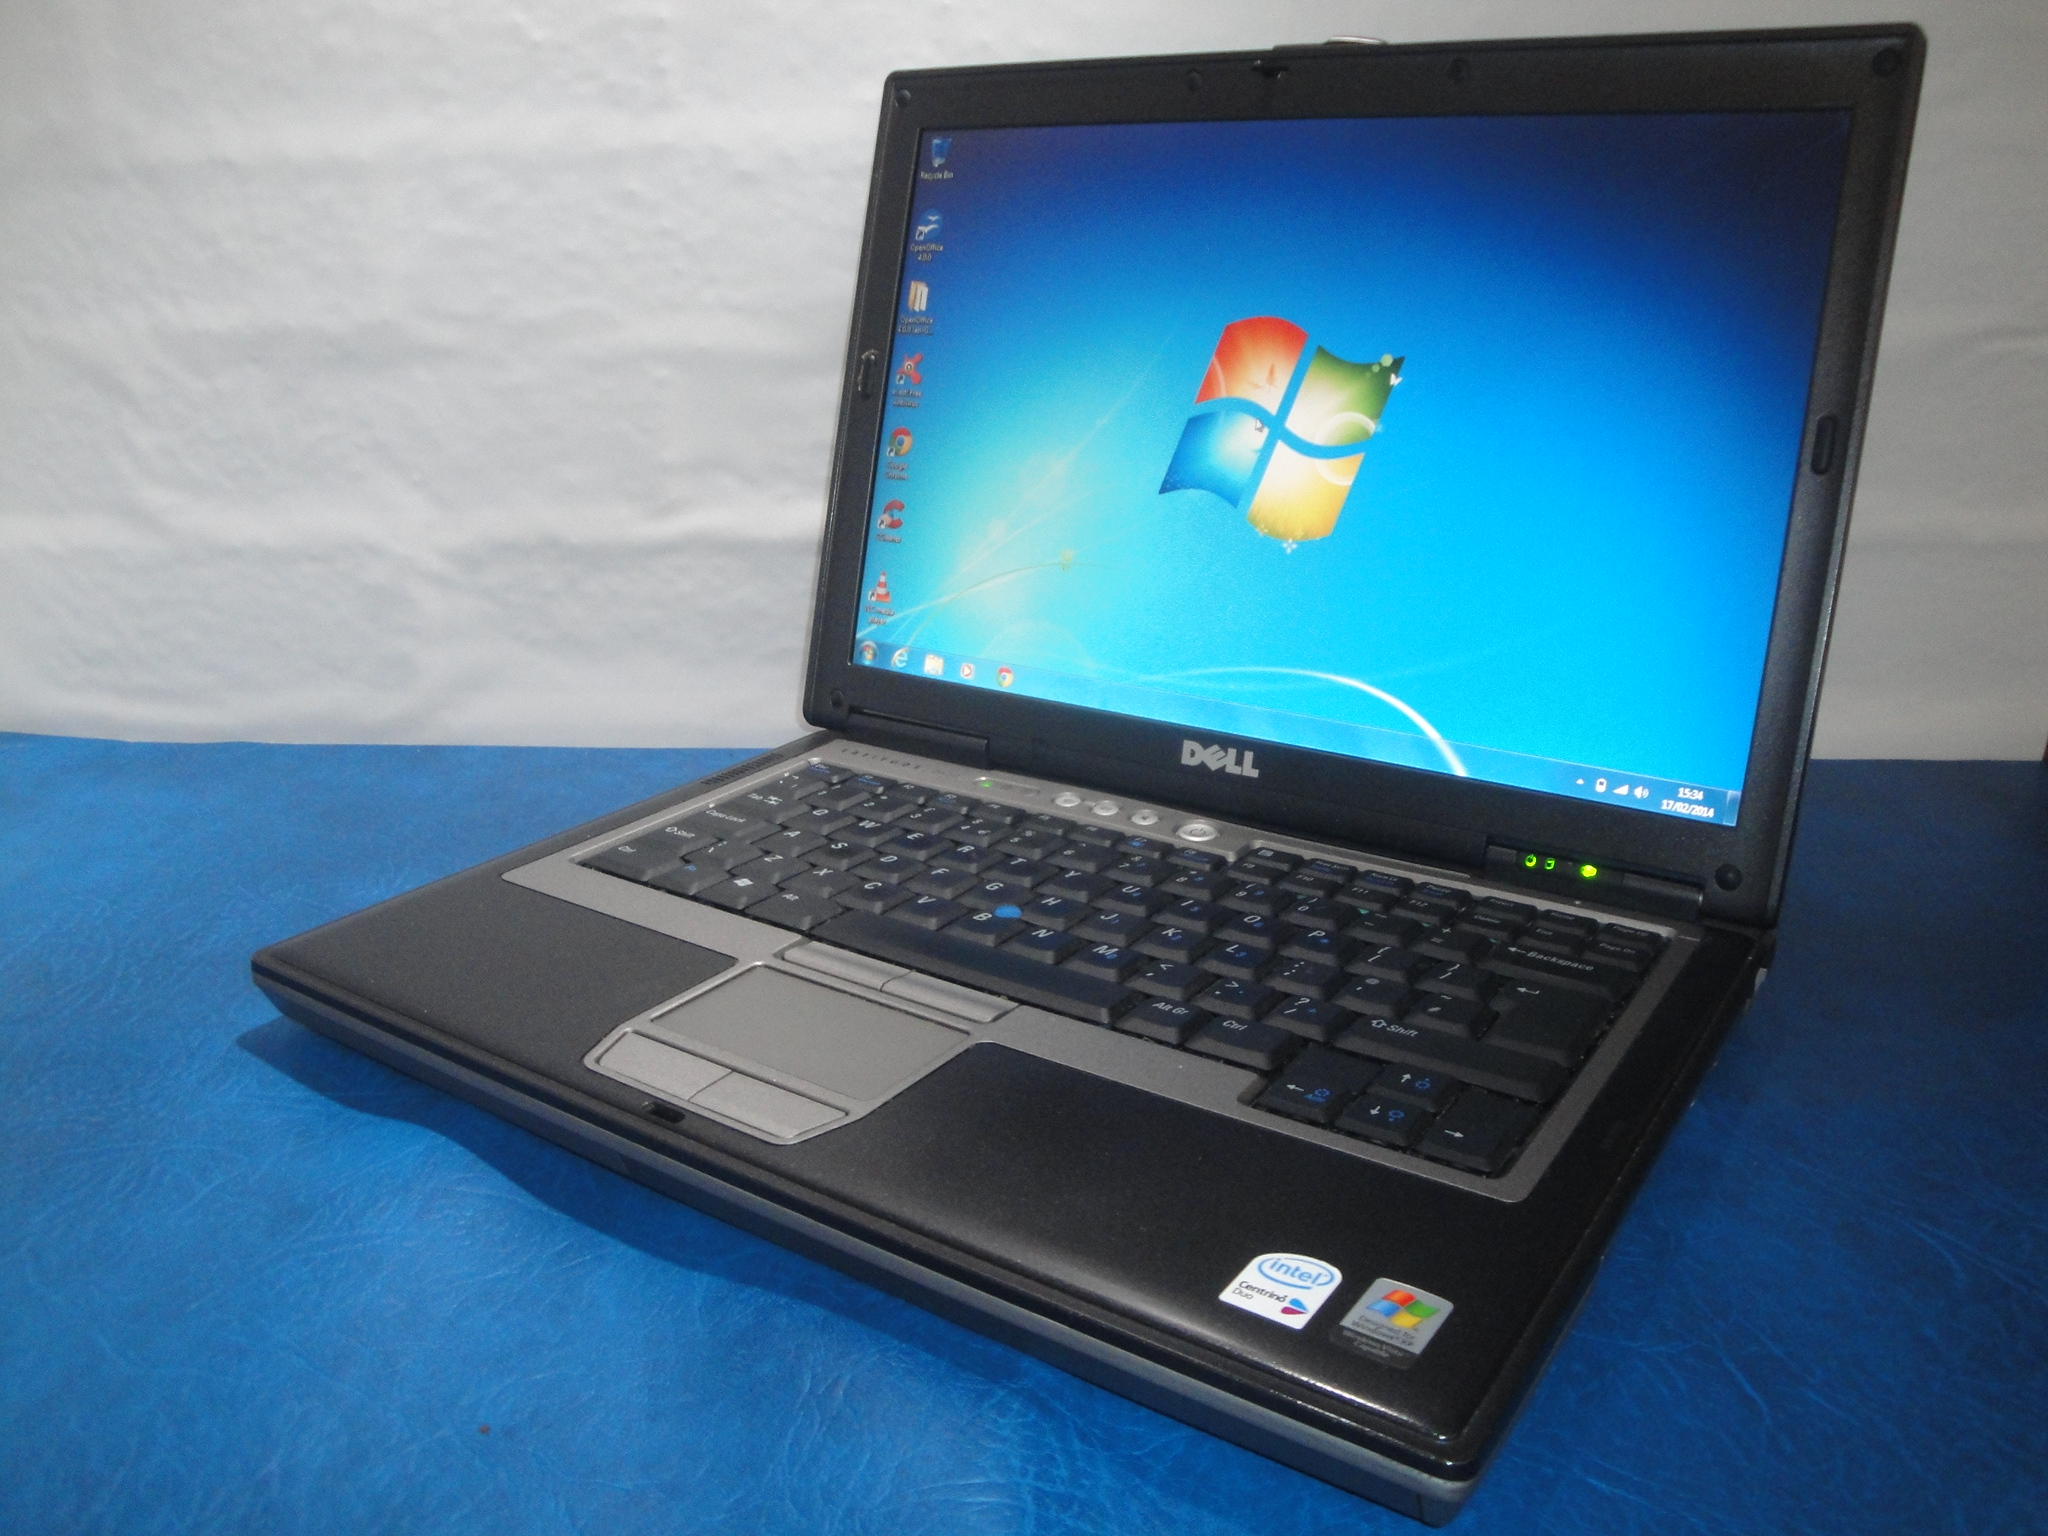 dell laptop product key windows 7